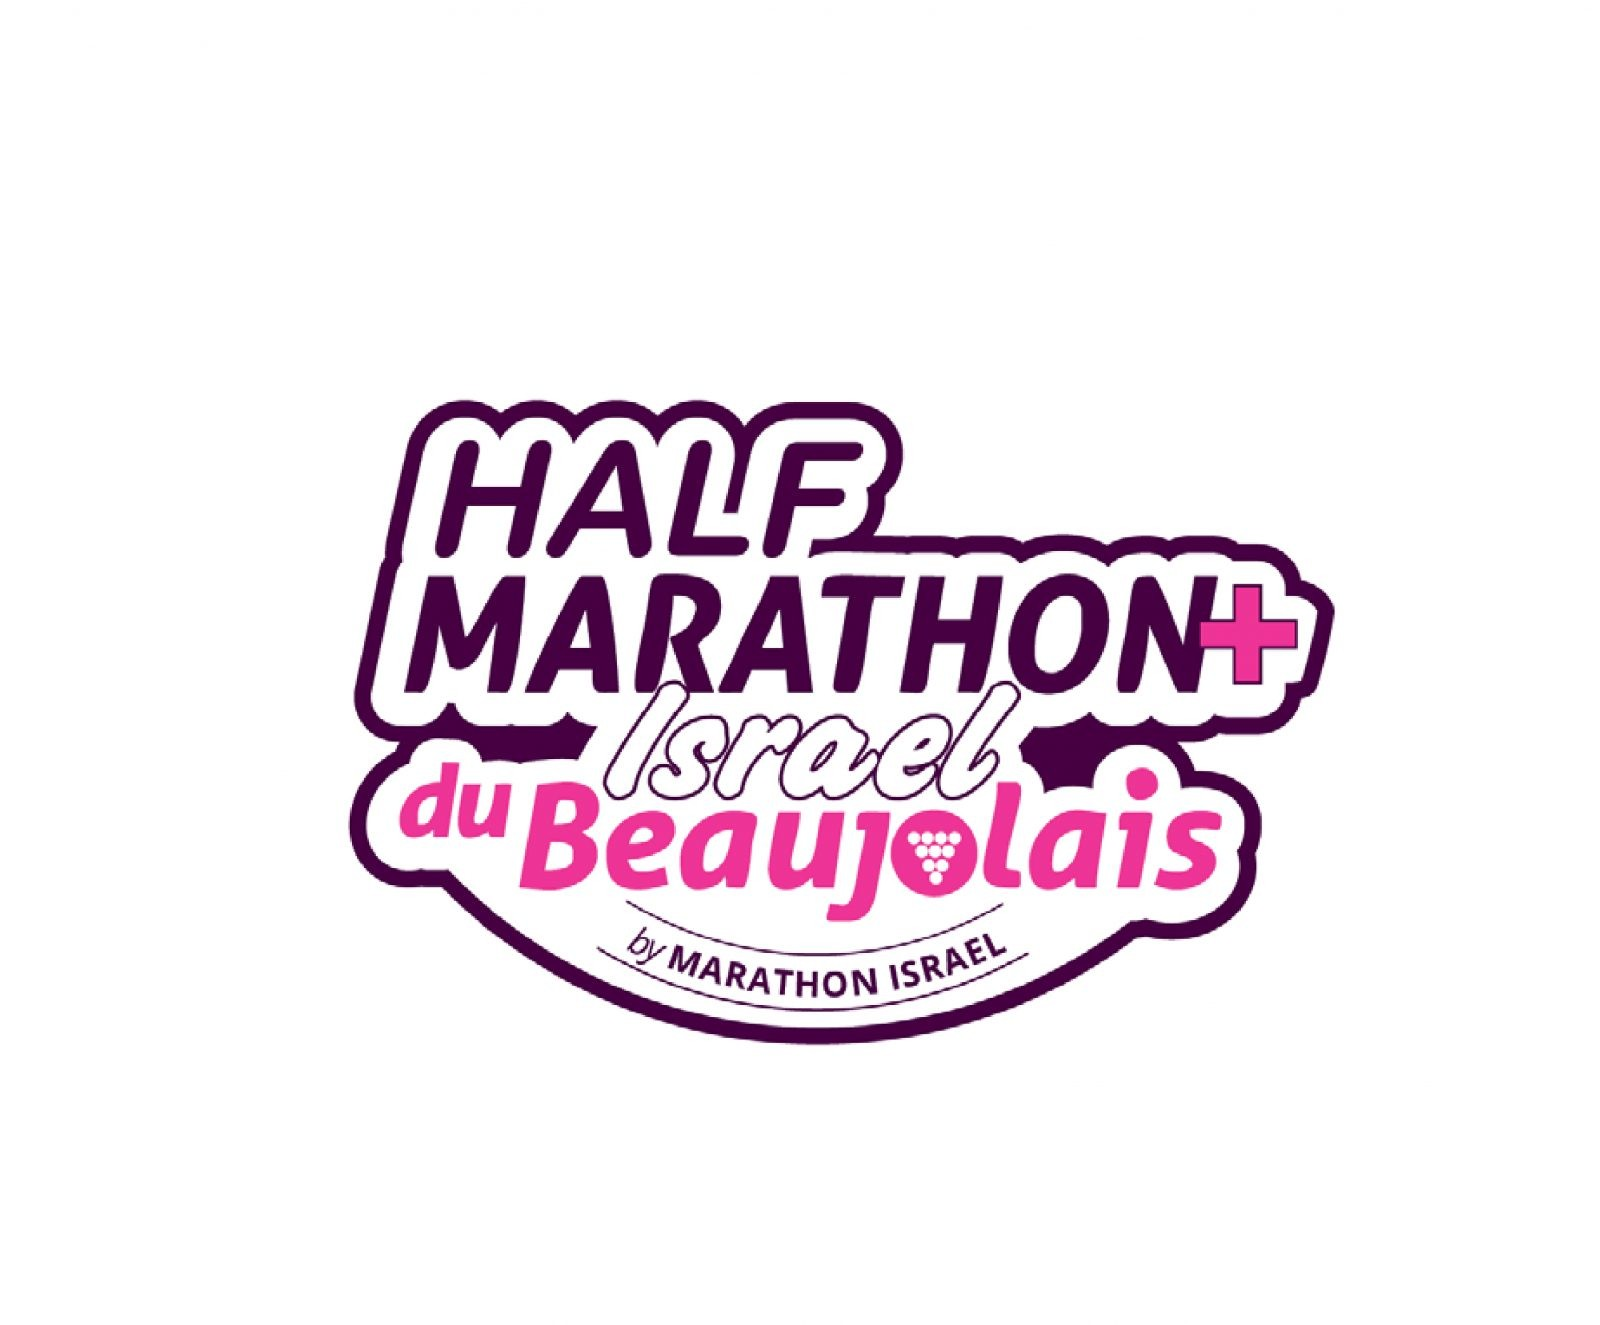 Israel Beaujolais Race